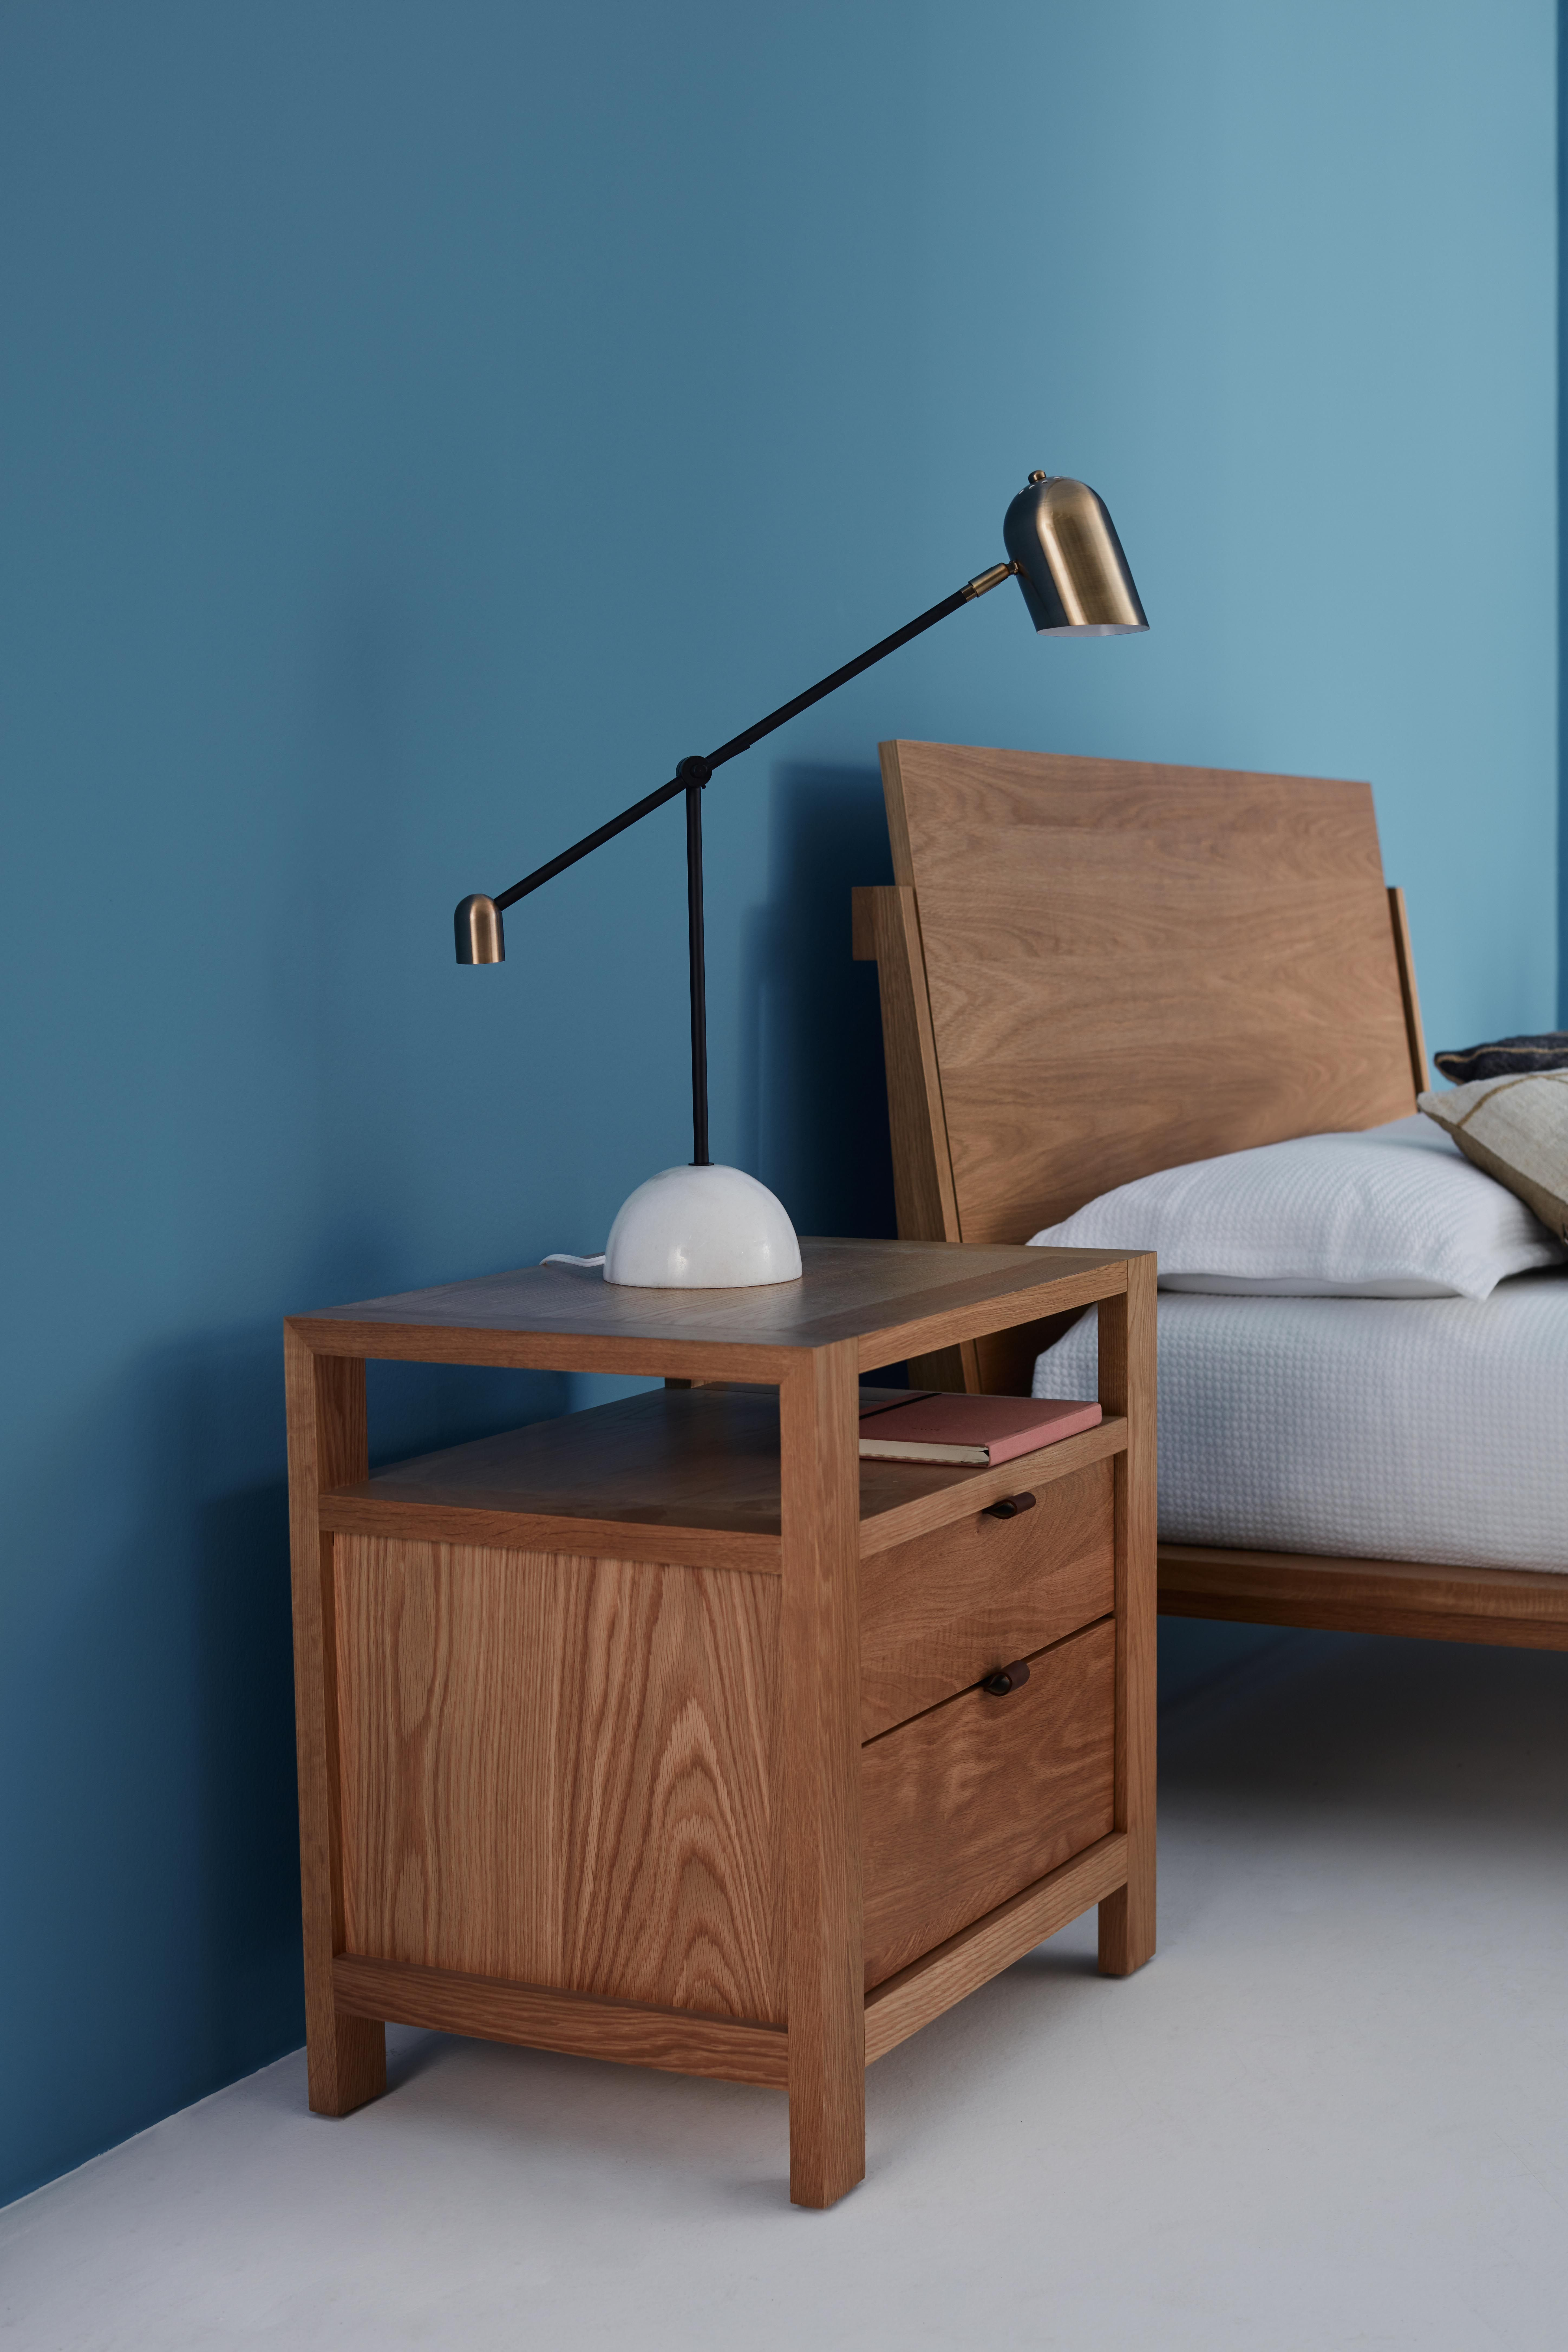 Mobilia Wood adds a touch of warmth, authenticity and